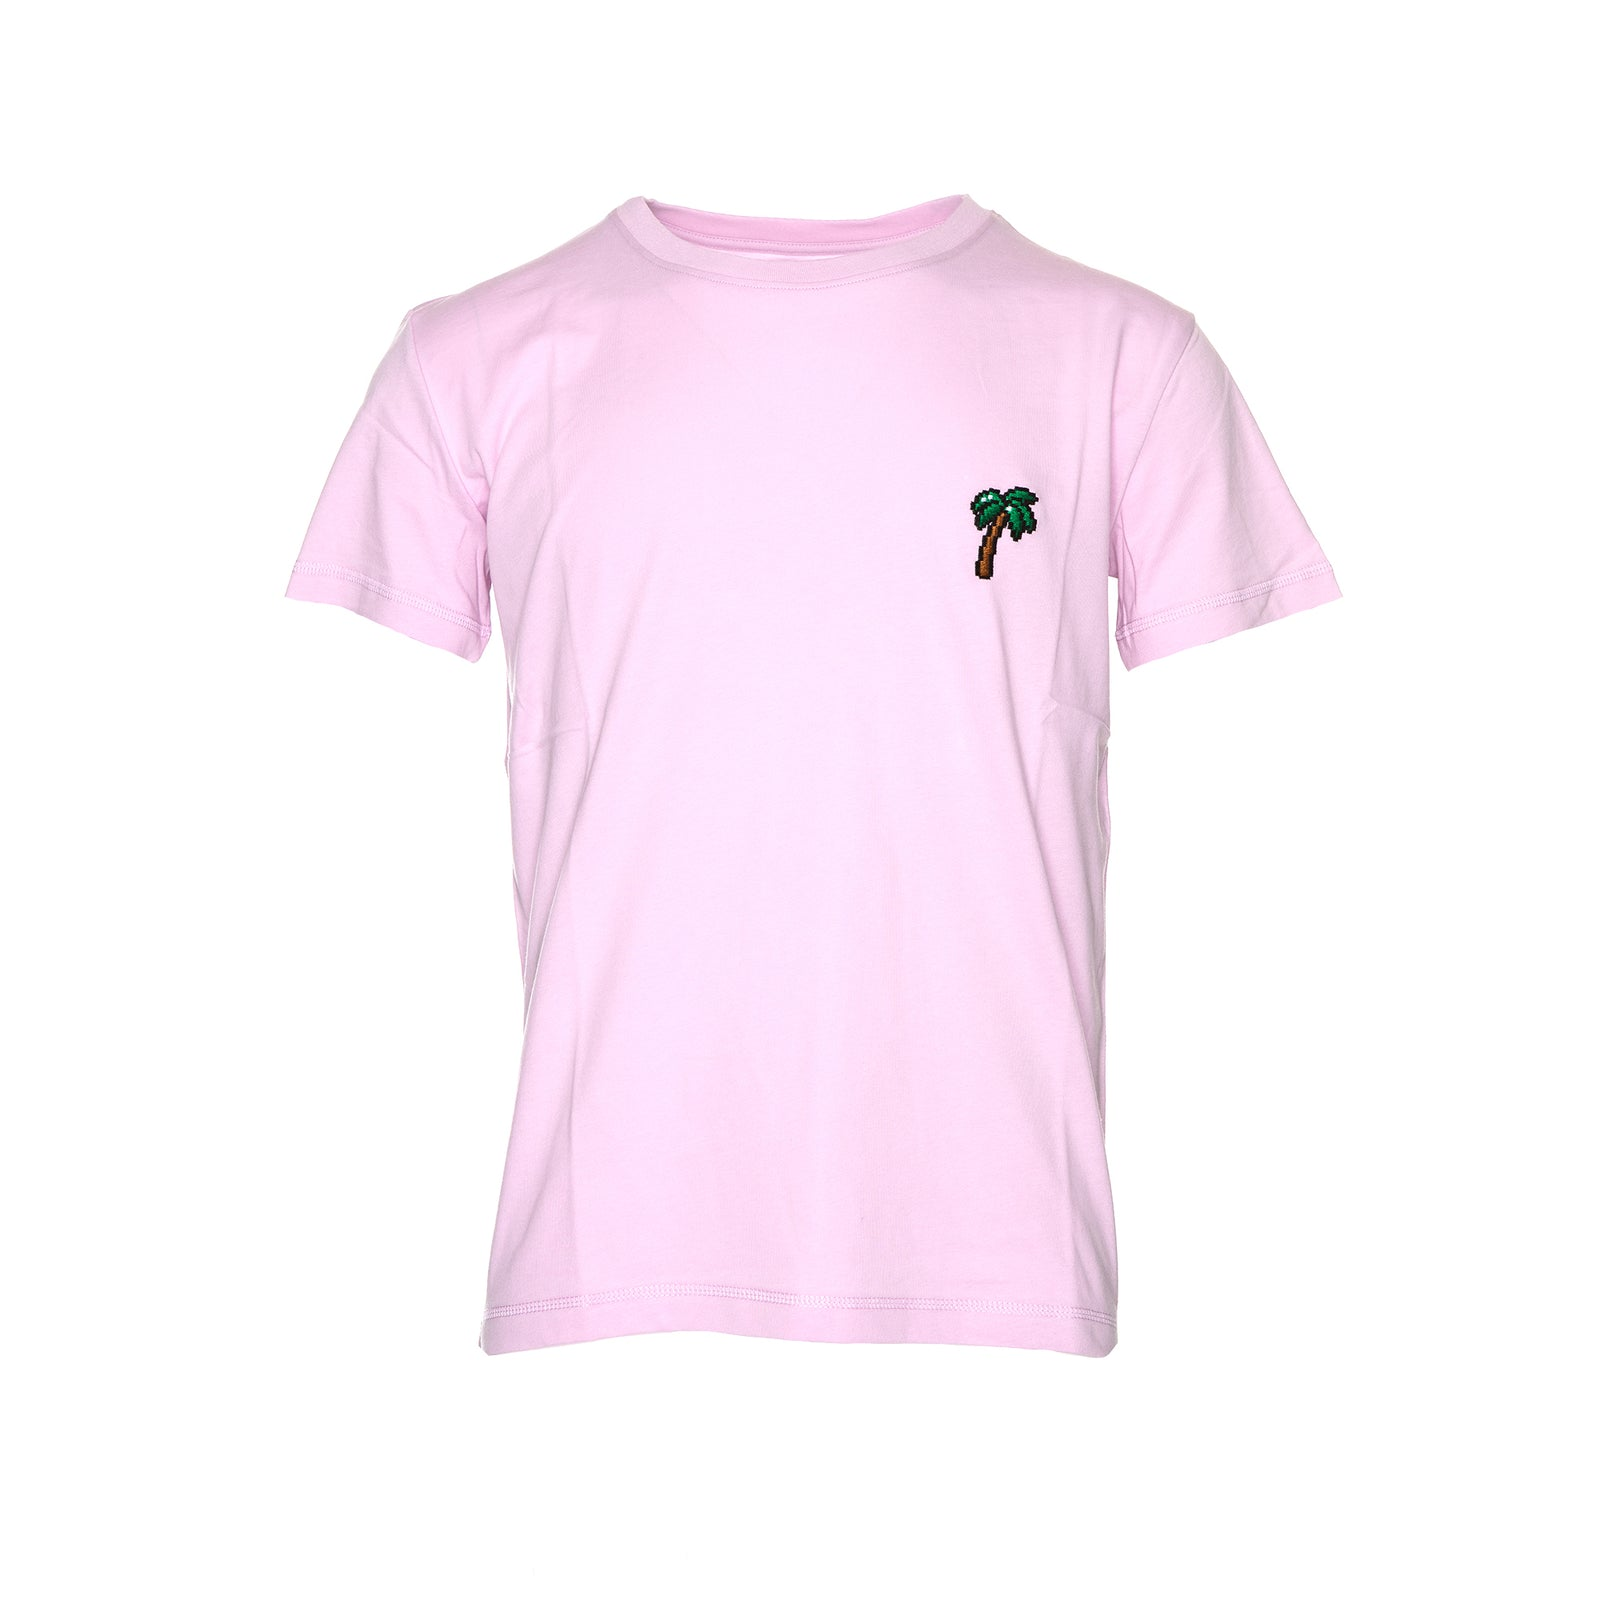 Bricktown Old Pink Palm Tee